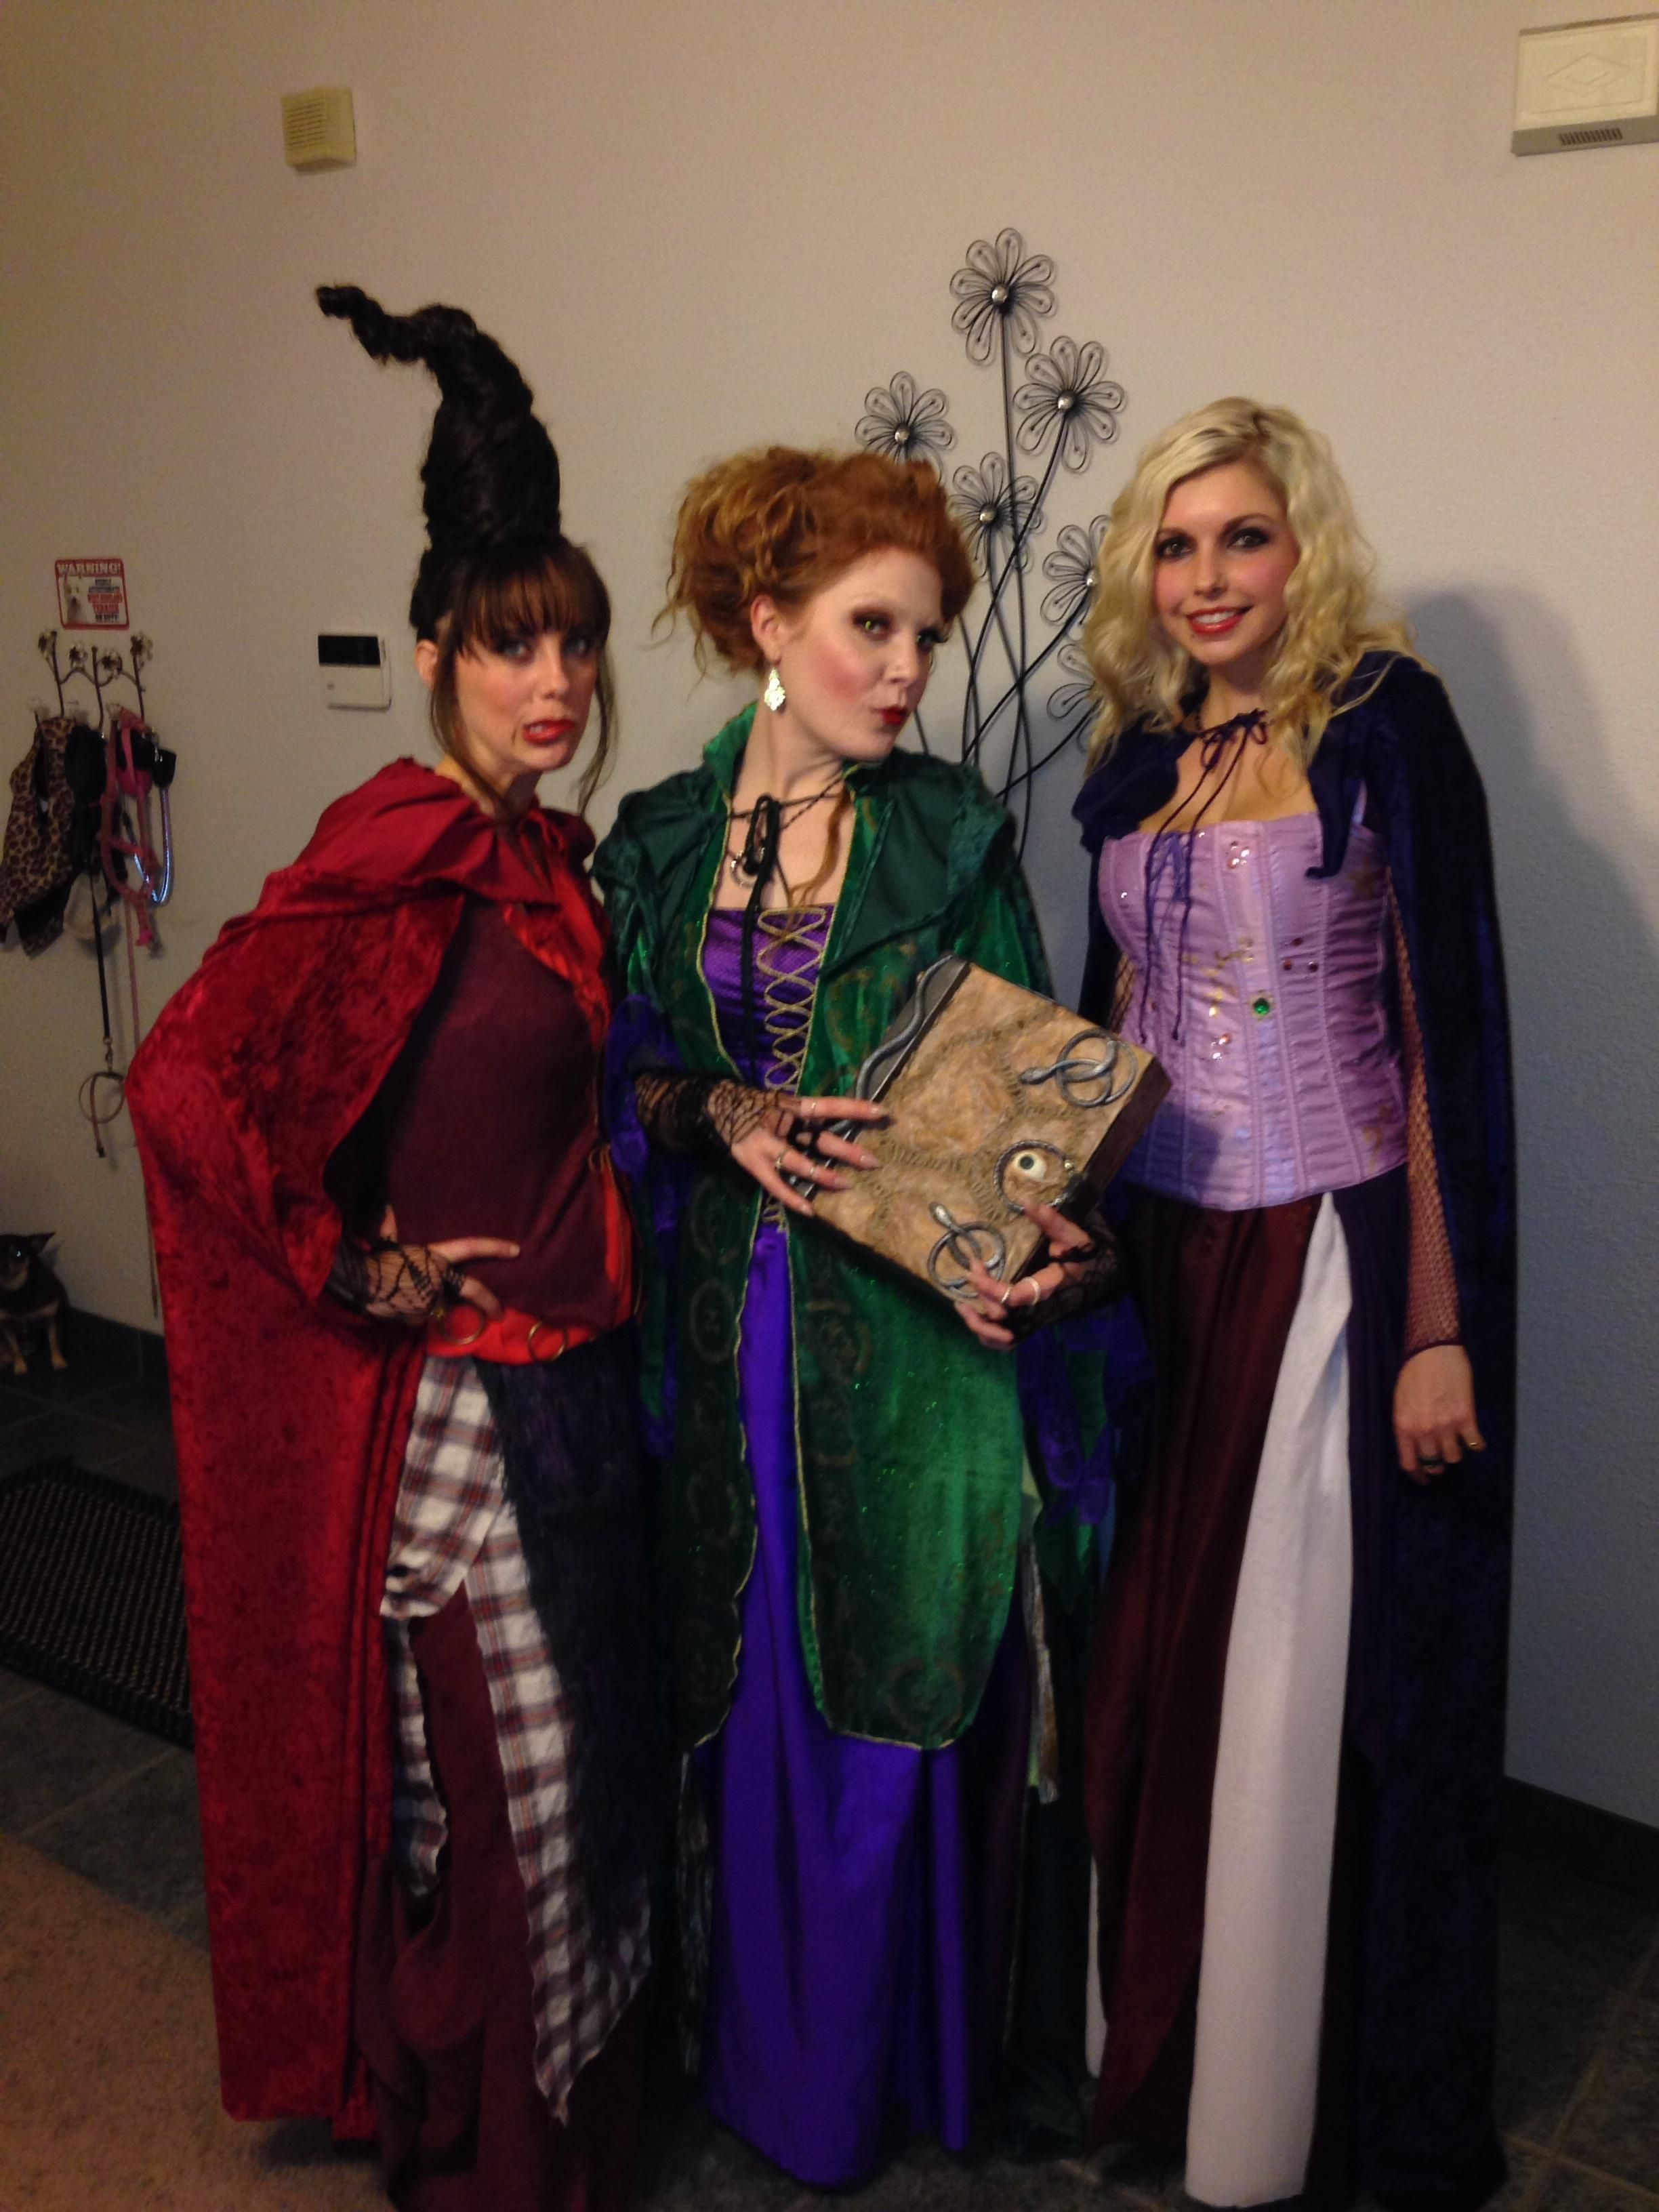 20 Fun Halloween Costumes for You and Your BFF | Costumes, Hocus ...